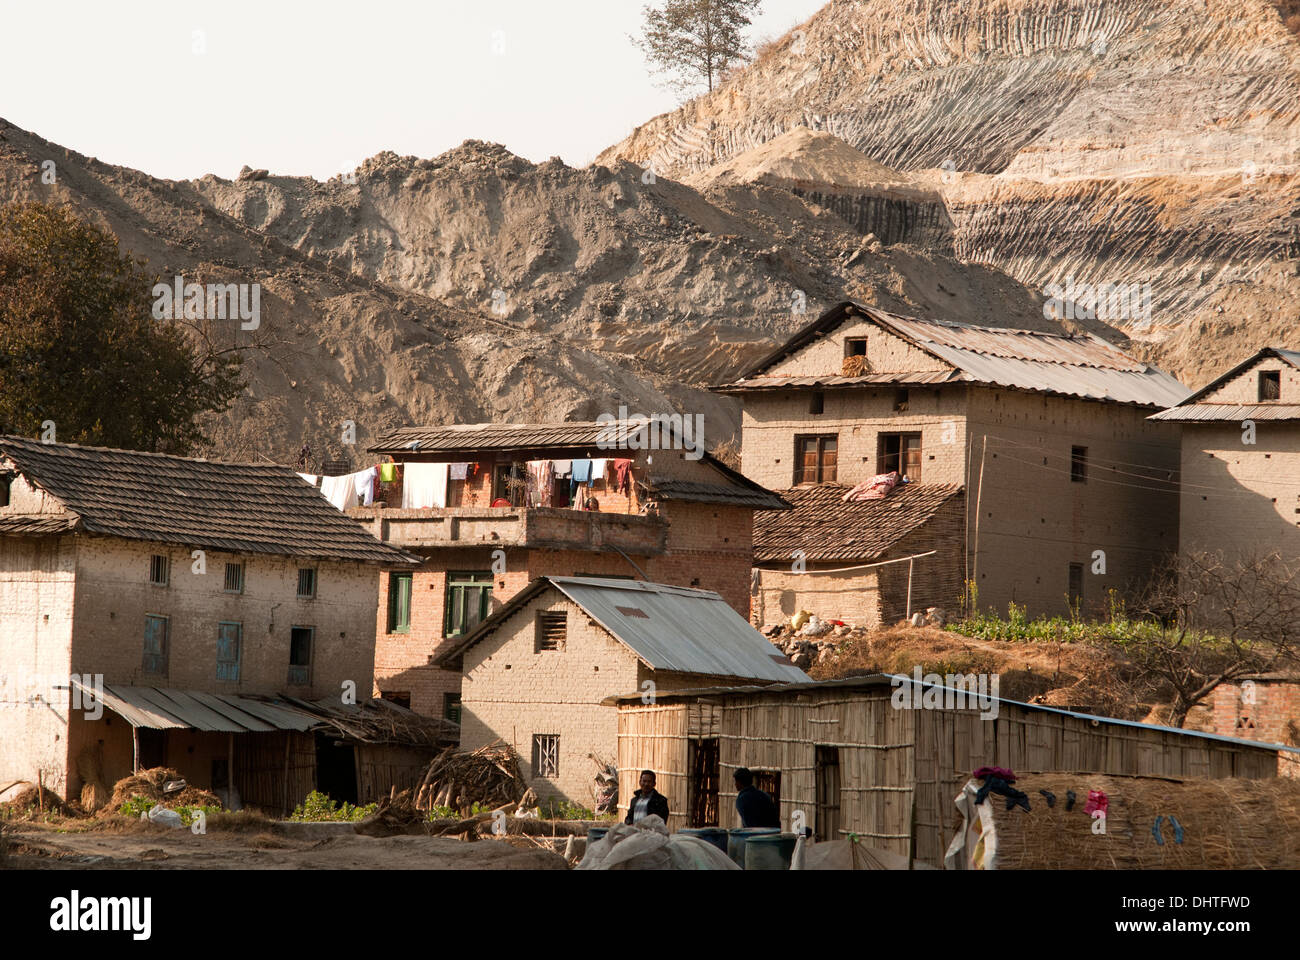 Land being plained in village of Bhaktapur - Stock Image